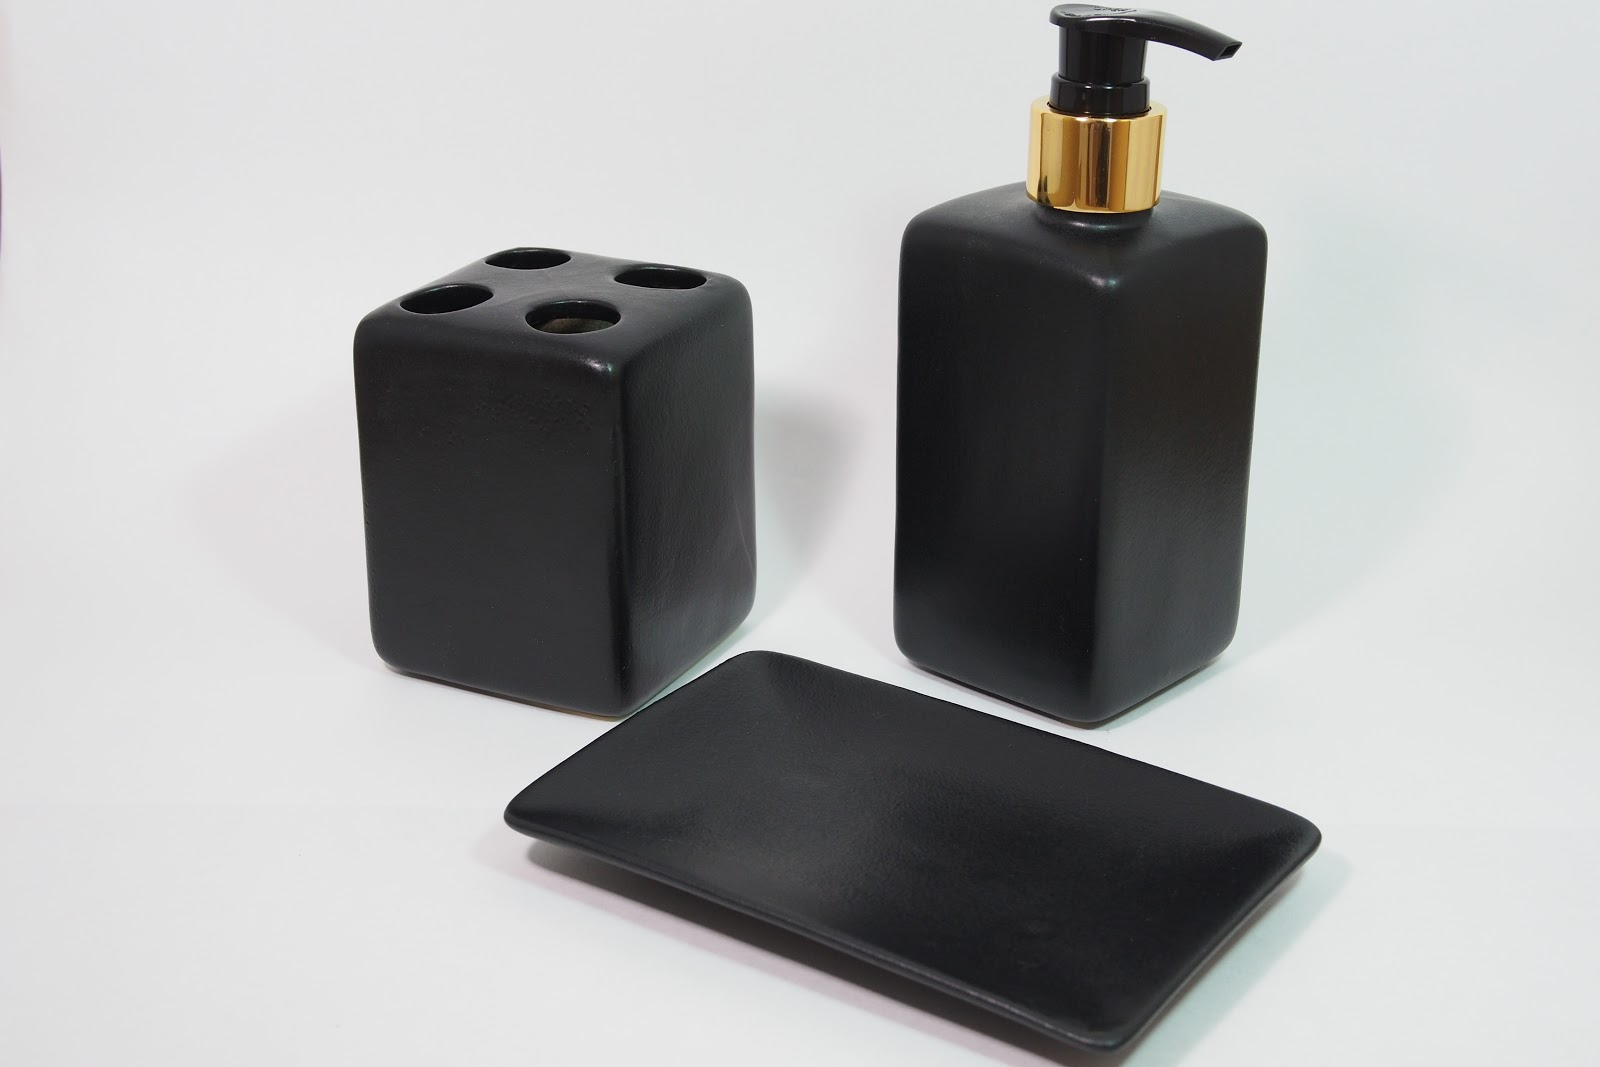 Beautiful Black and Gold Bathroom Soap Dispenser 1600 x 1067 · 85 kB · jpeg